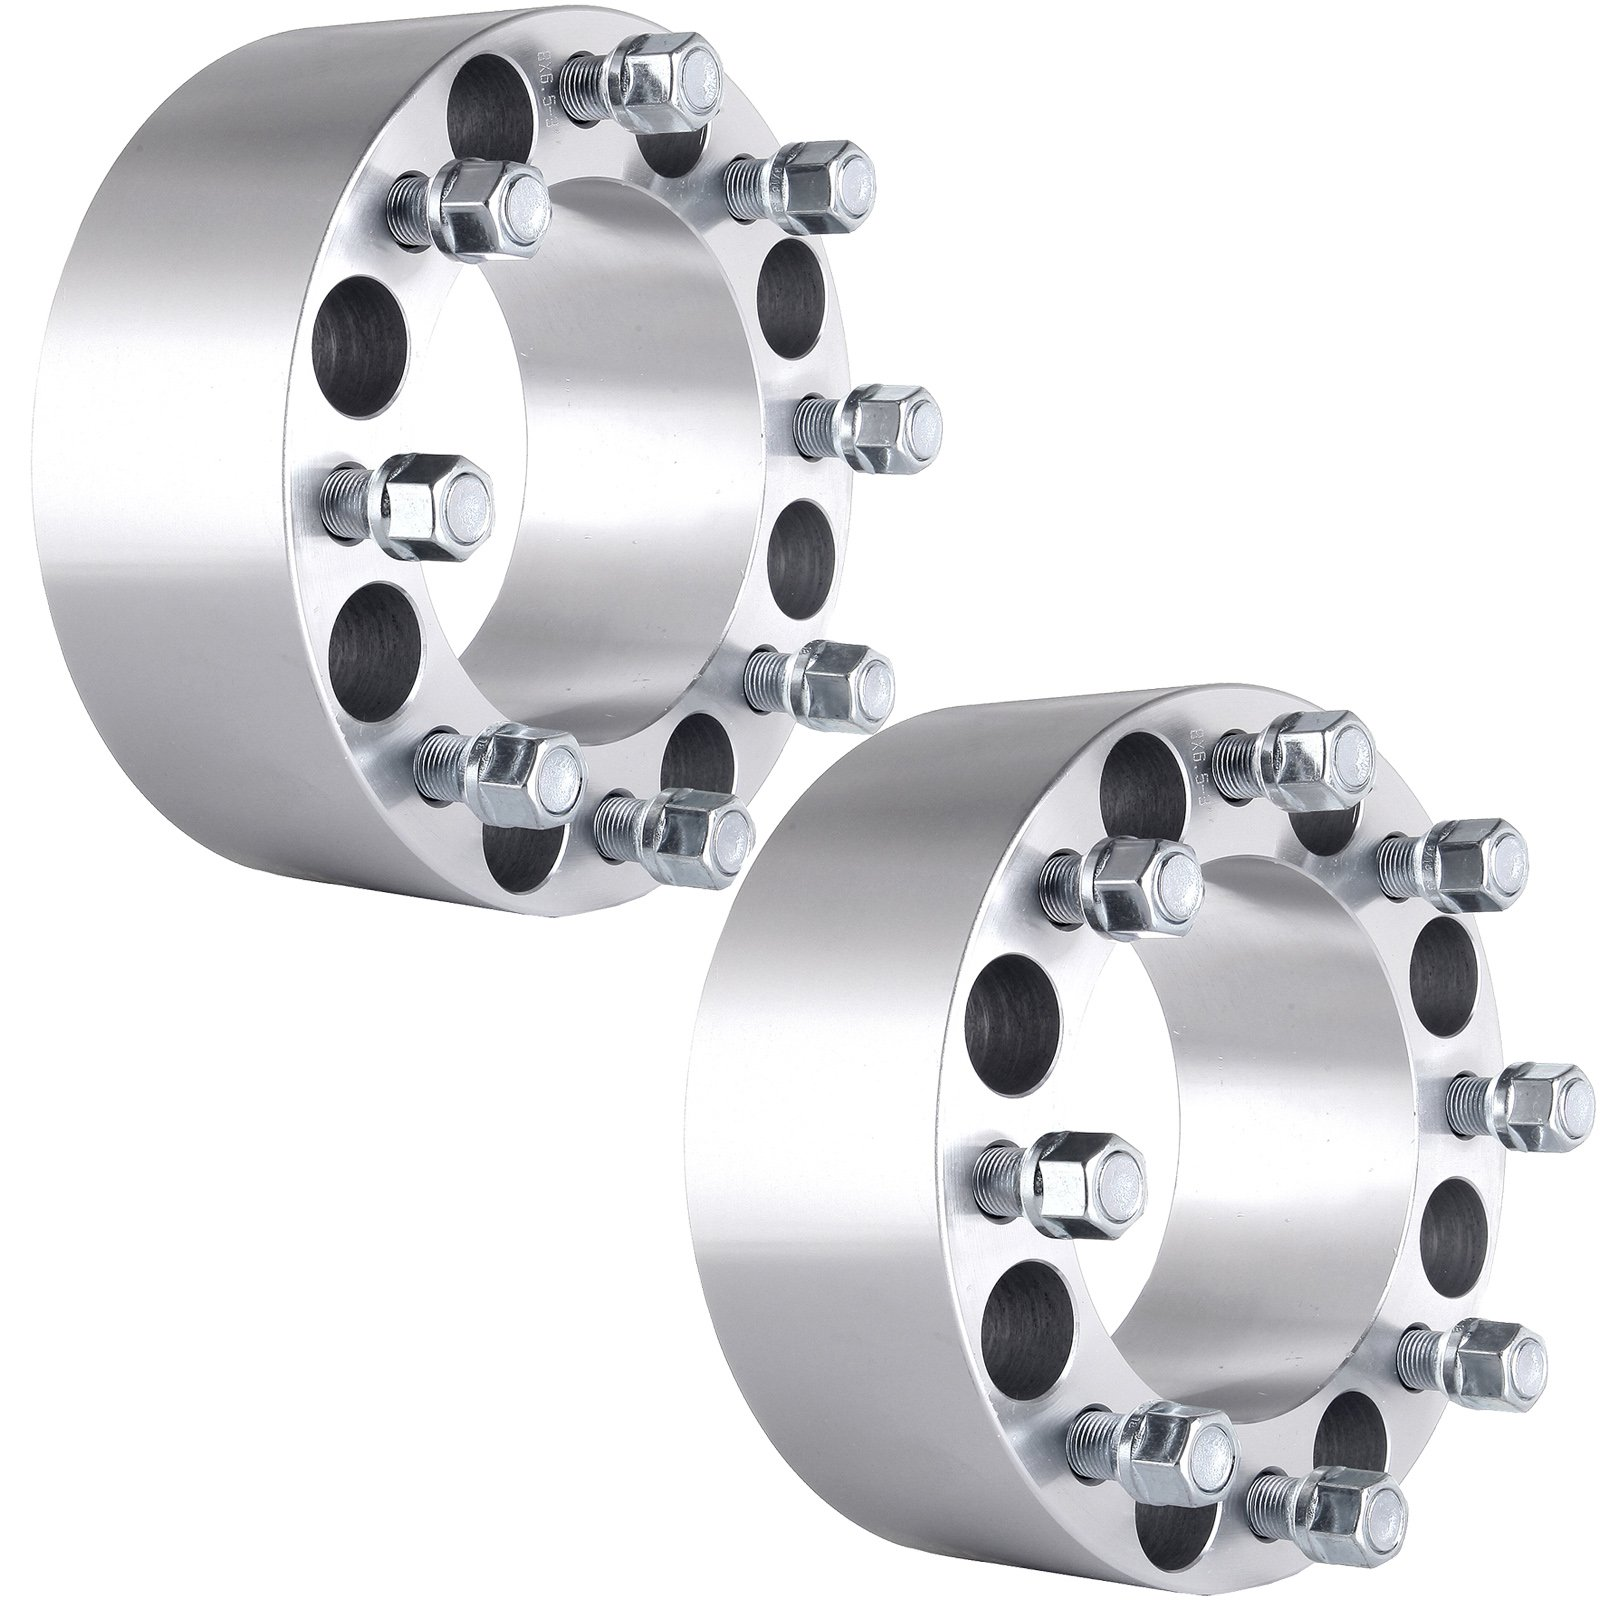 ECCPP 8x6.5 Wheel Spacers, Wheel Spacer Adapters 8 Lug 2X 3(75MM) 8x6.5(125MM) Replacement fit Dodge RAM 2500 3500 DUALLY HD Ford F250 F350 Econoline 250 350 9/16'' x 18 Studs & Lug Nuts